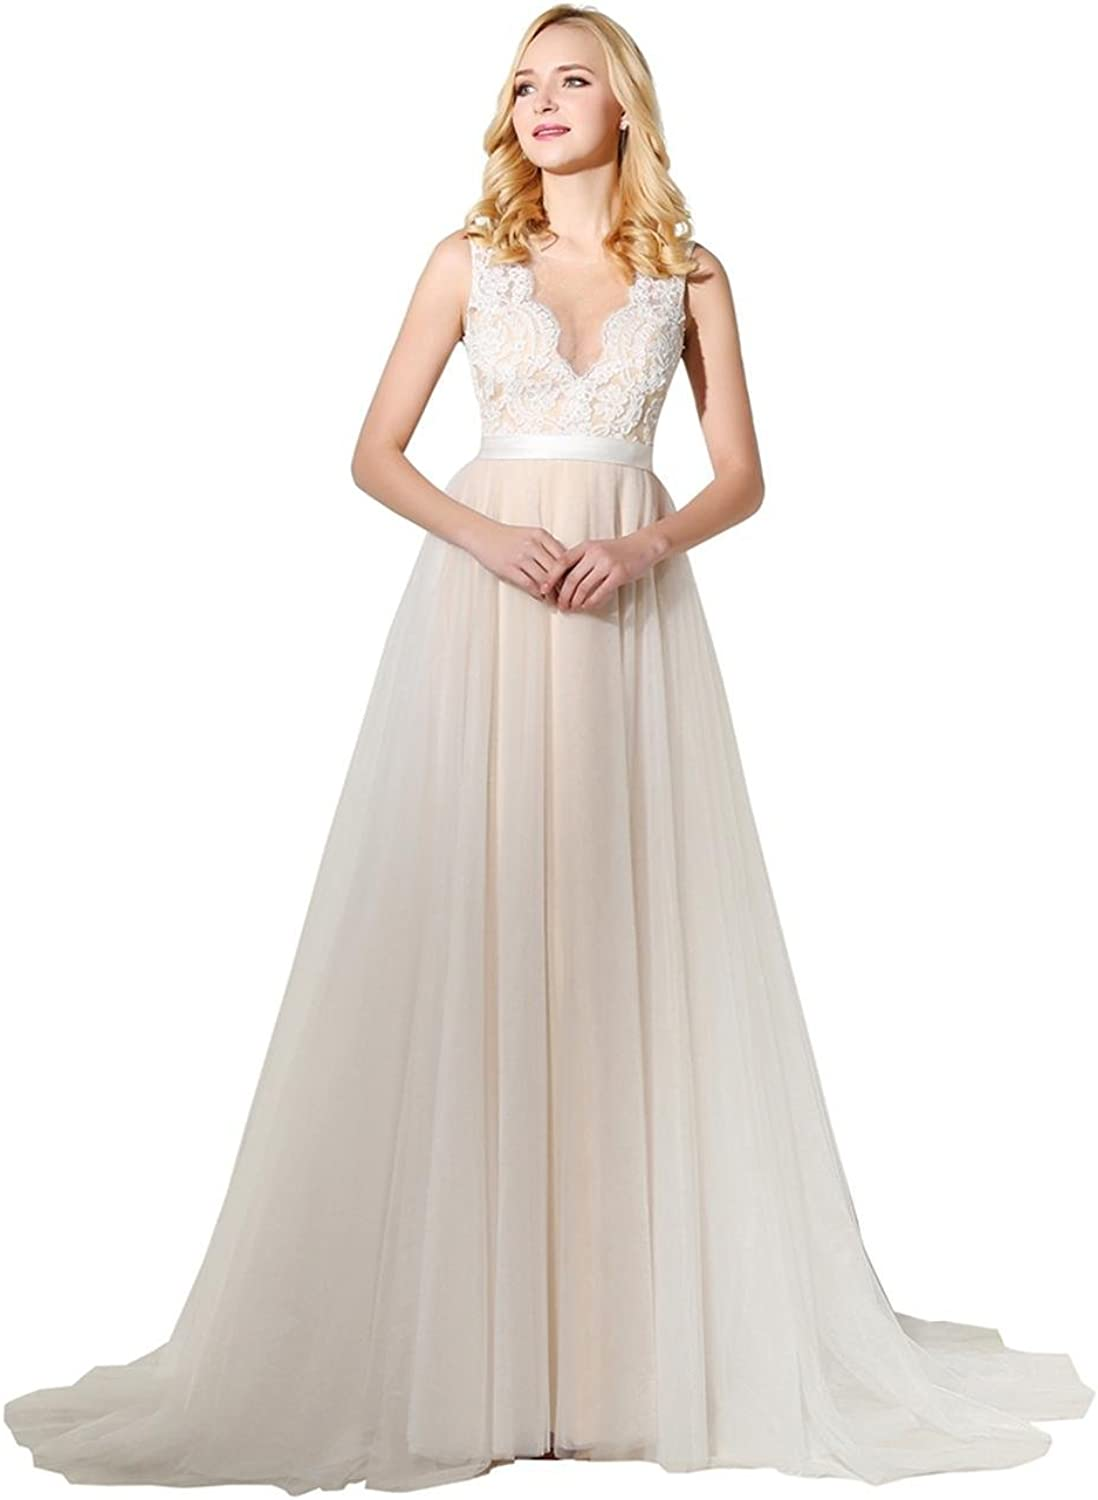 Lavaring Women's Sheer Straps Jewel Covered Button Tulle Train Party Dress